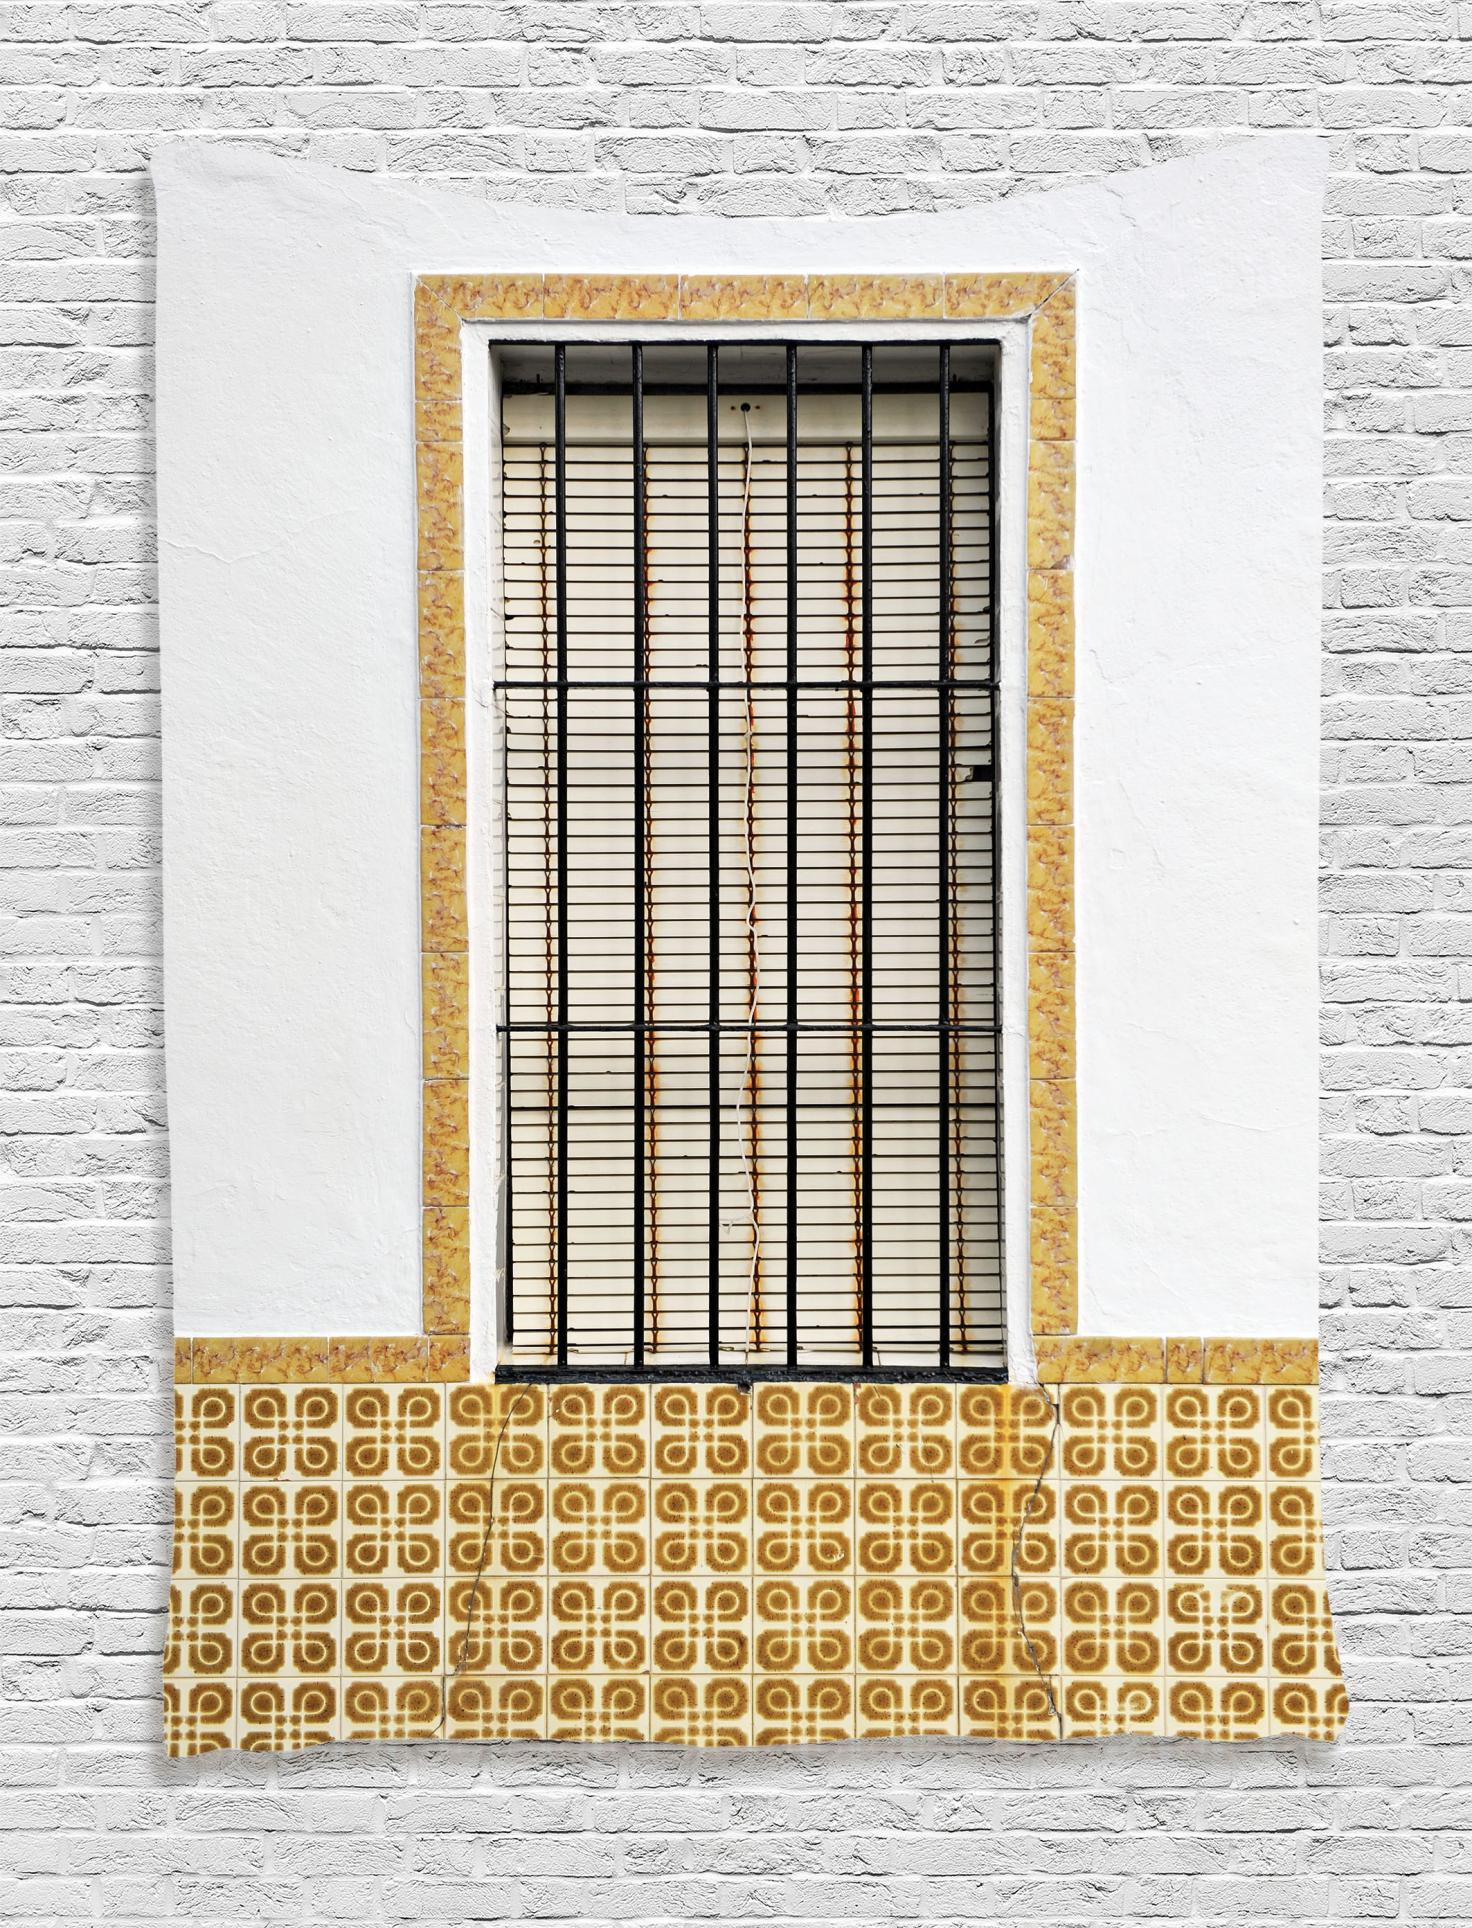 Country Tapestry, Image Of Modern Spanish Window And Shutters With Mosaic Patterns Urban City Life, Wall Hanging For Bedroom Living Room Dorm Decor, For Shutter Window Hanging Wall Decor (View 14 of 30)